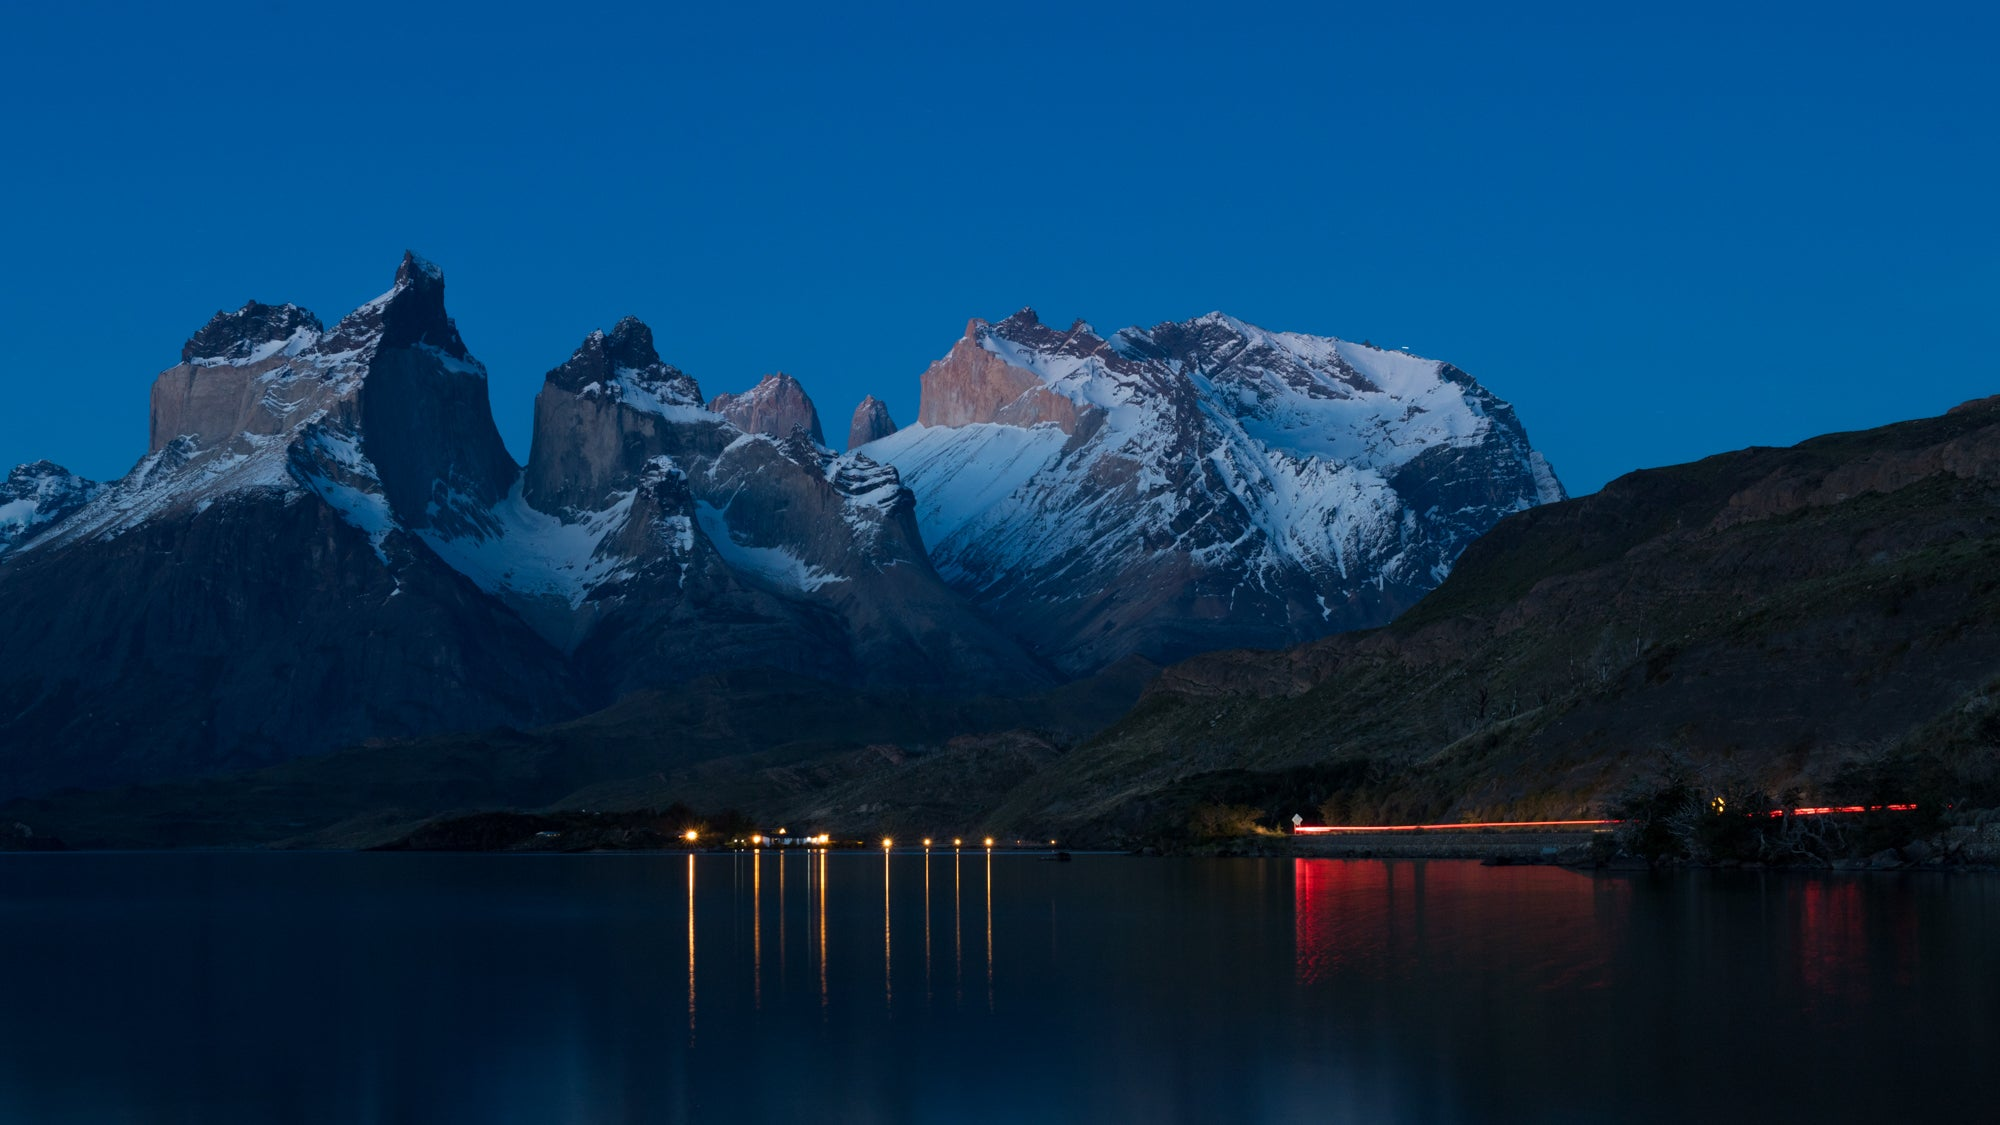 Limited edition patagonia landscape photography